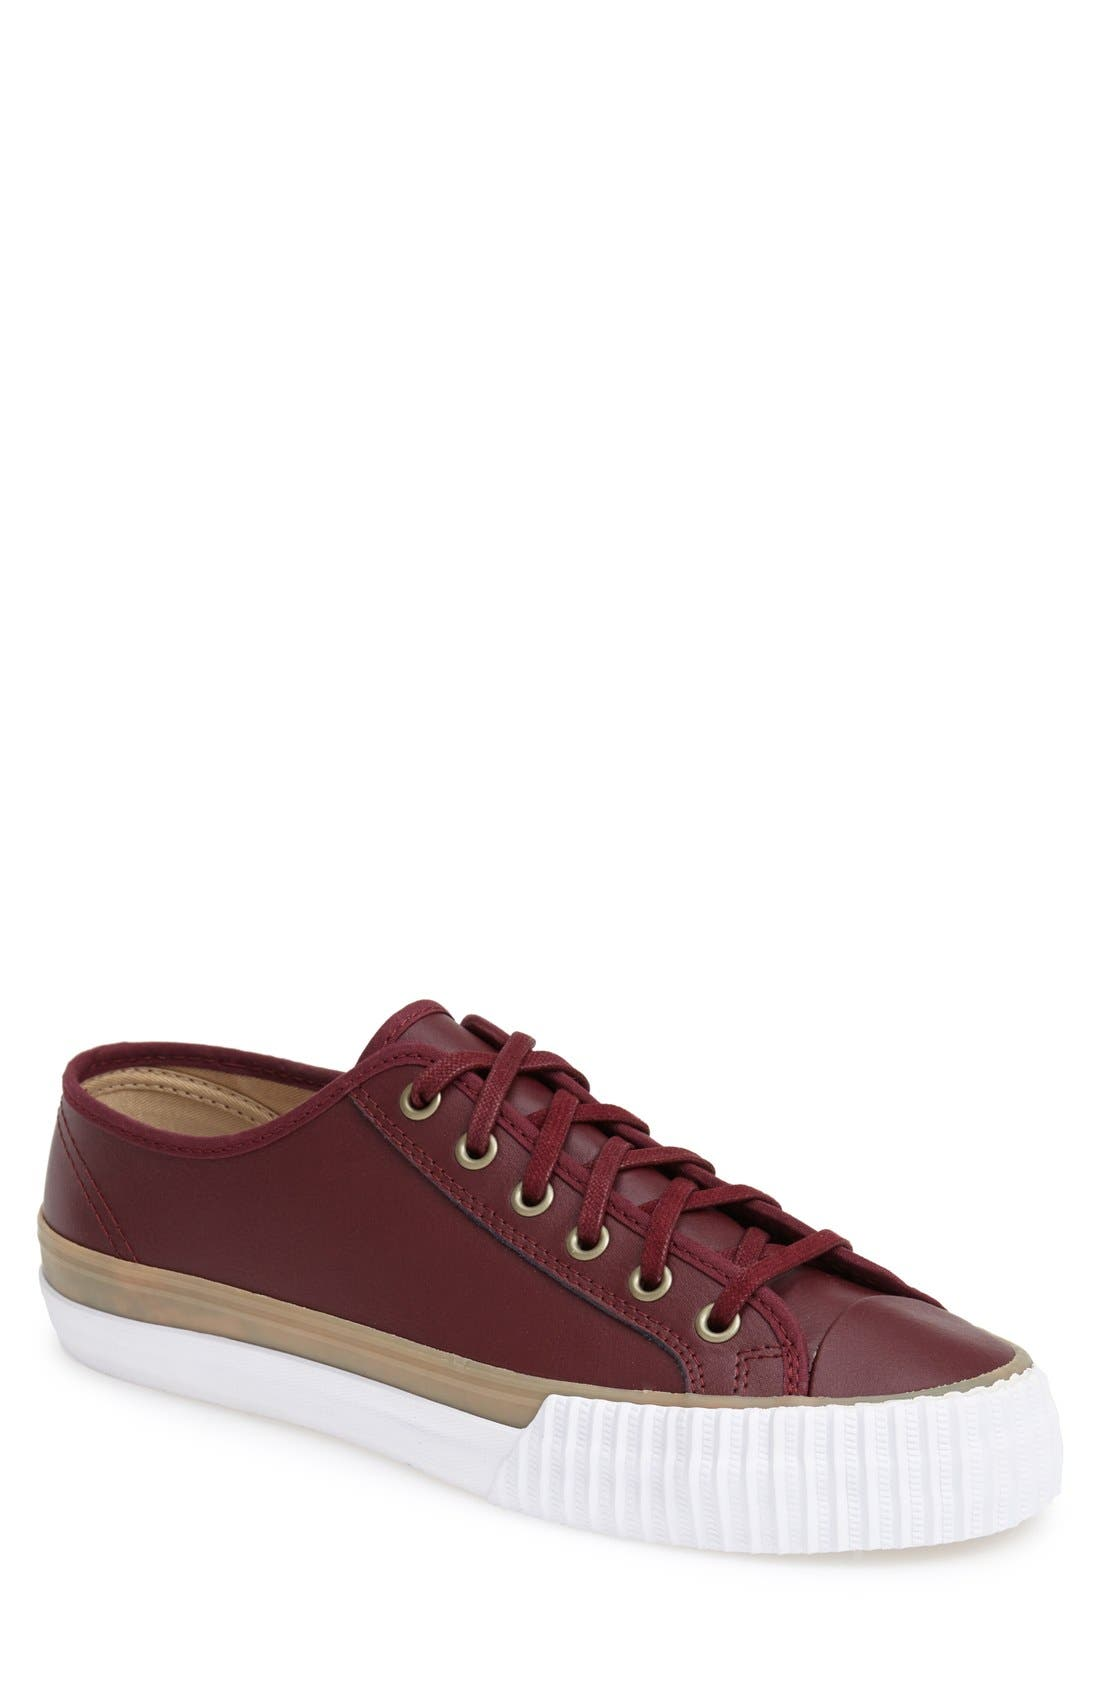 PF FLYERS 'Center Lo' Leather Sneaker, Main, color, 932